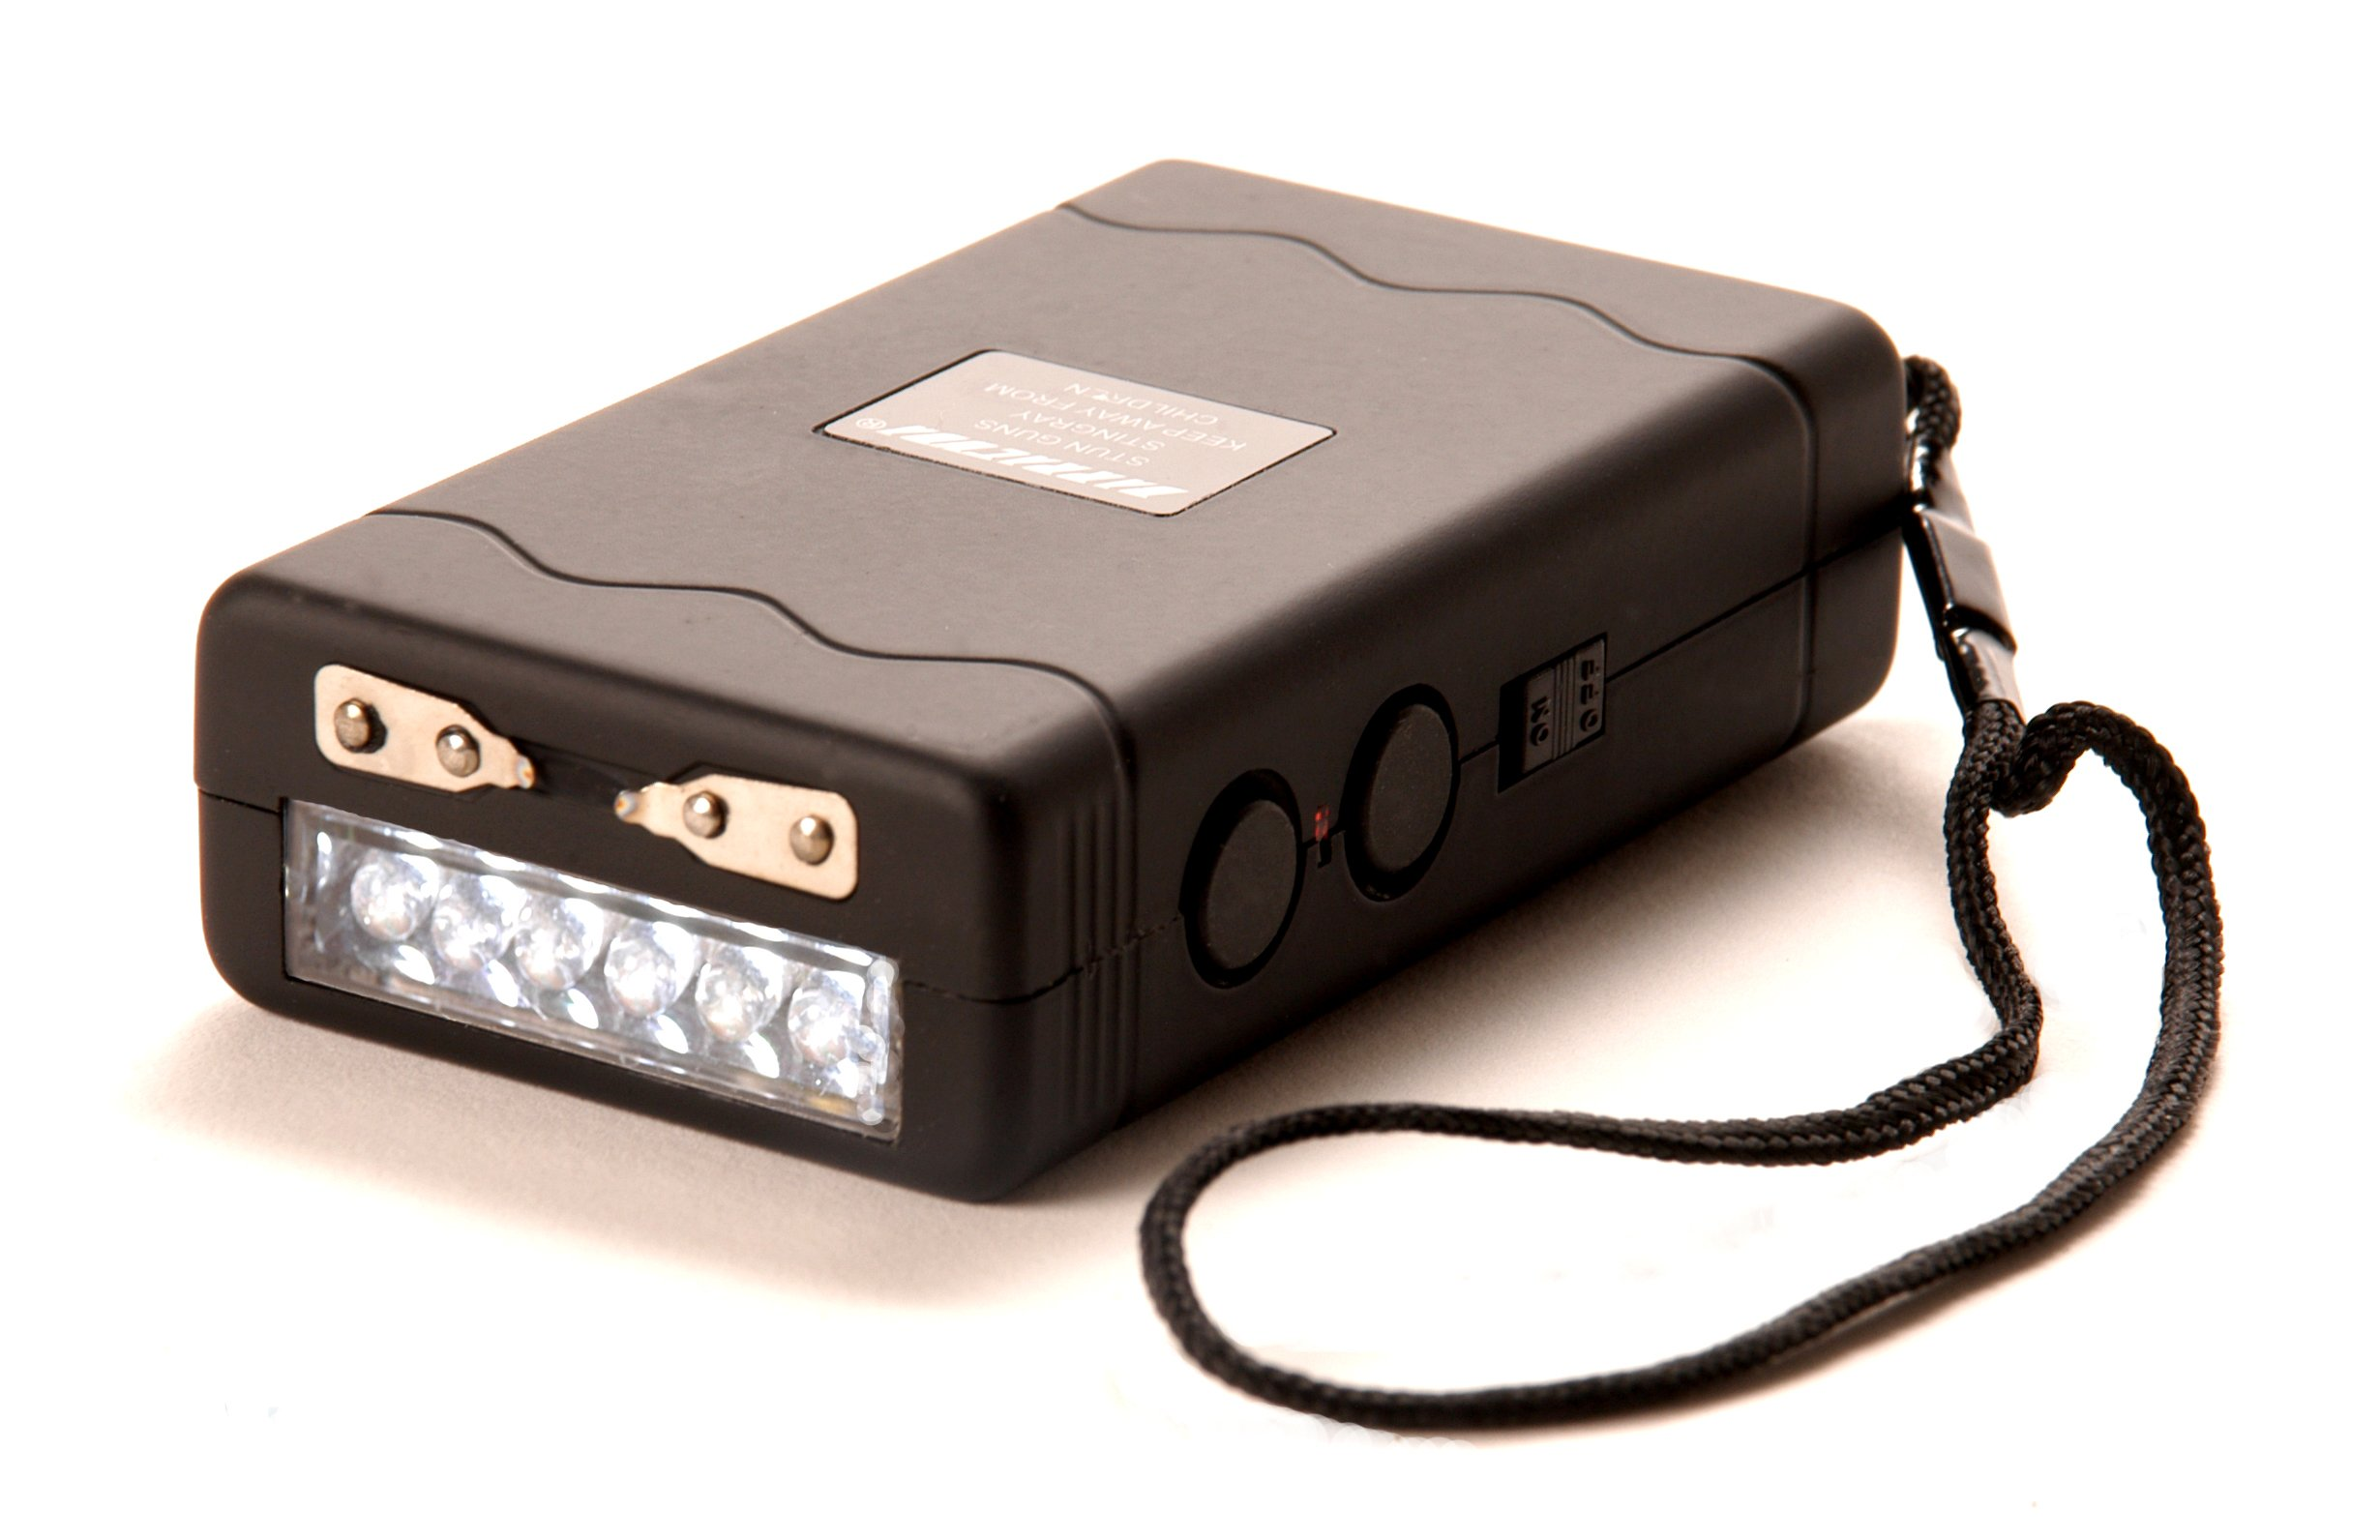 Barracuda Stingray Rechargeable Stun Gun with Safety/Disable Pin 6 LED Light